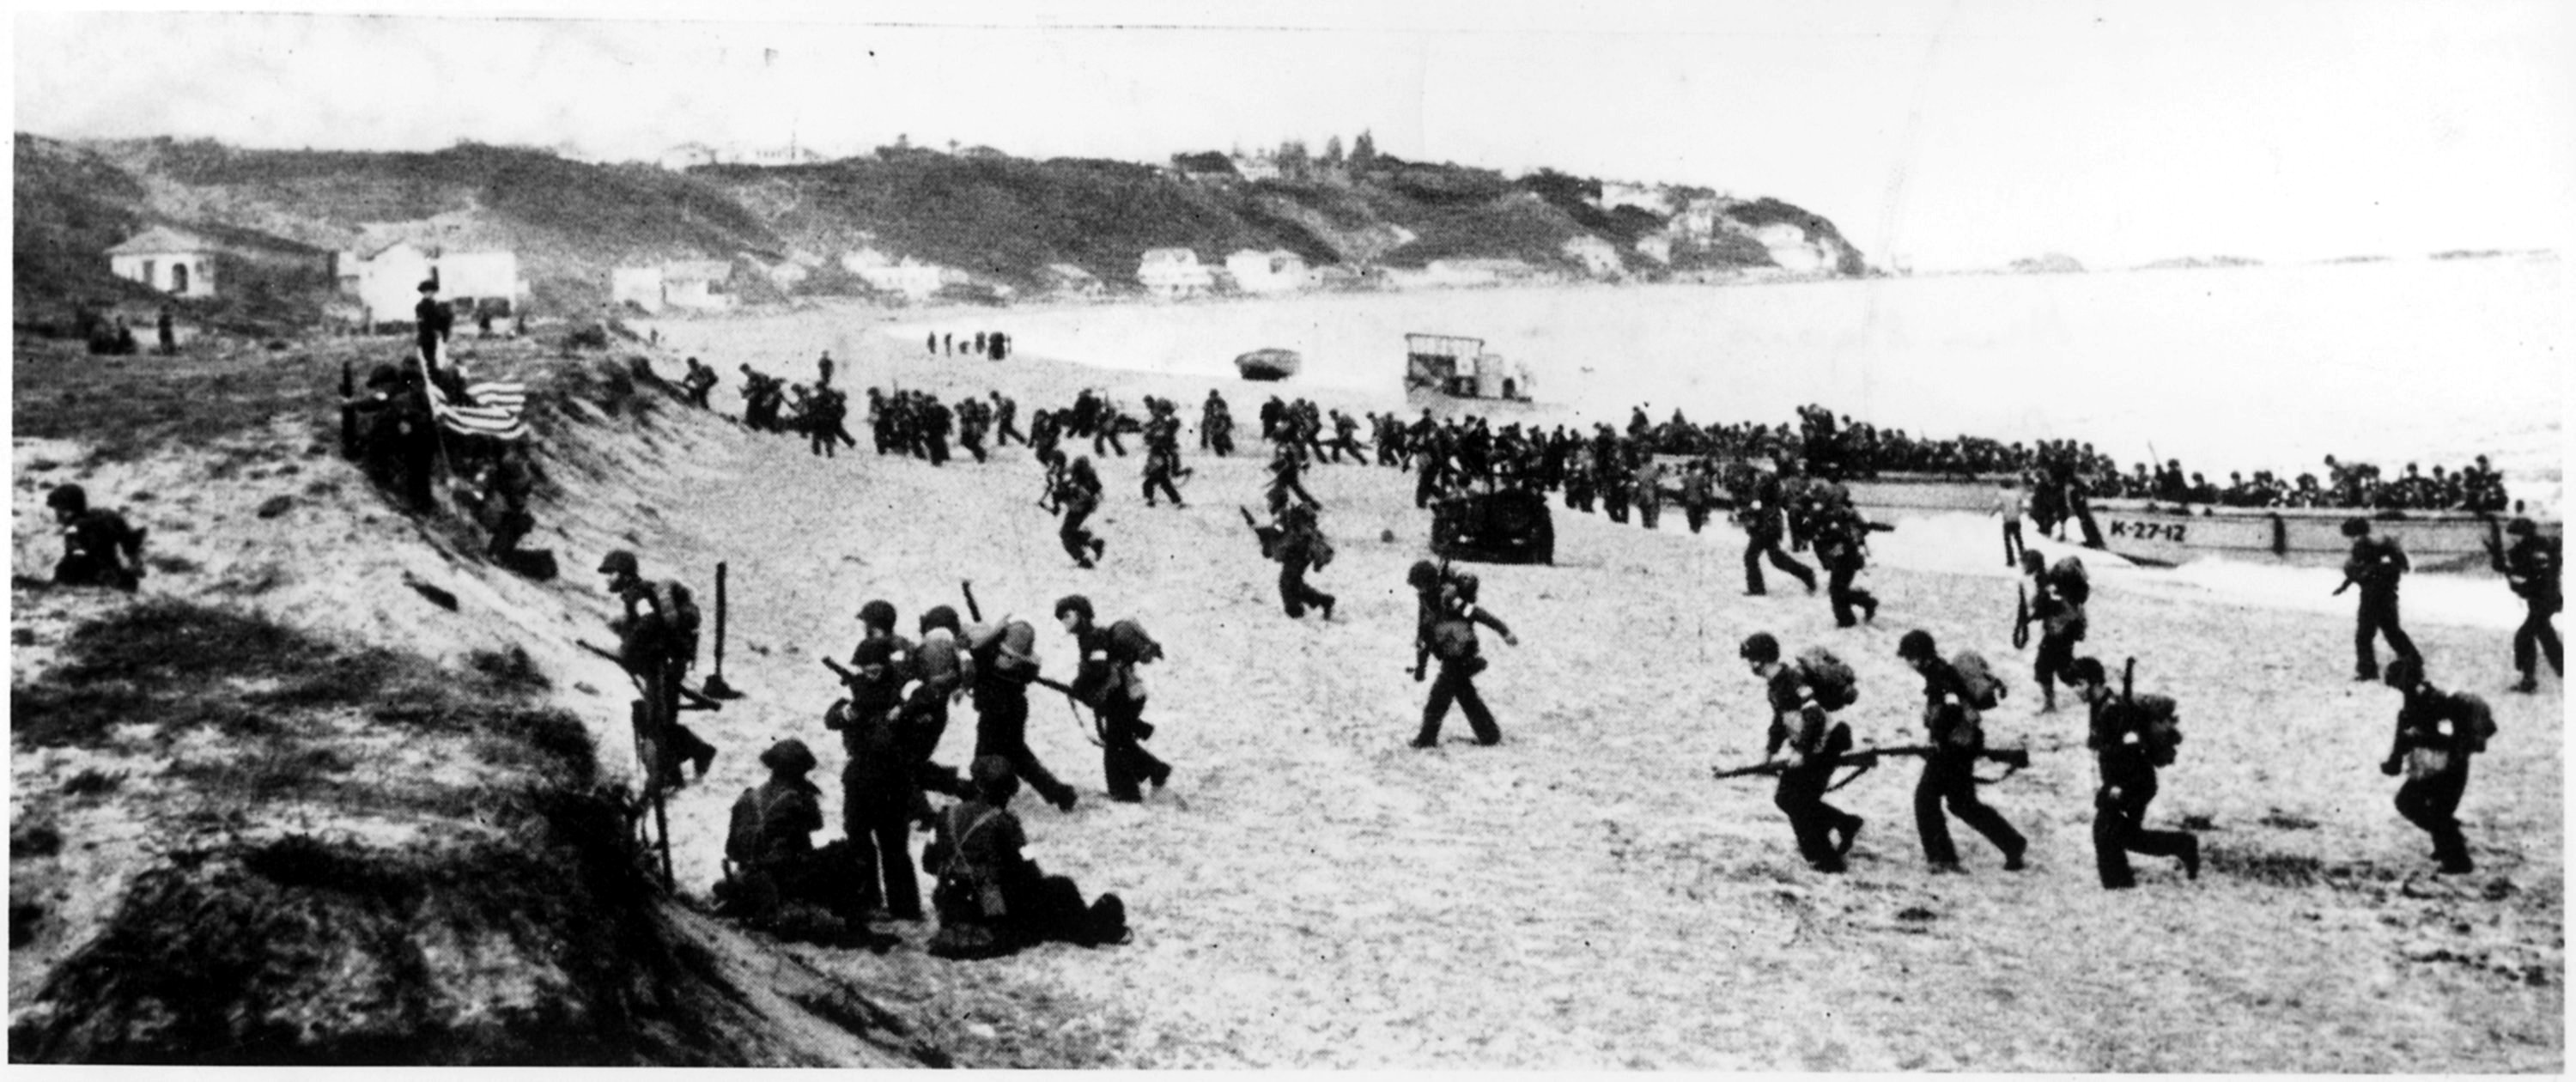 (Real) US Soldiers storm the (real) beaches of France in (the real) Operation Torch.